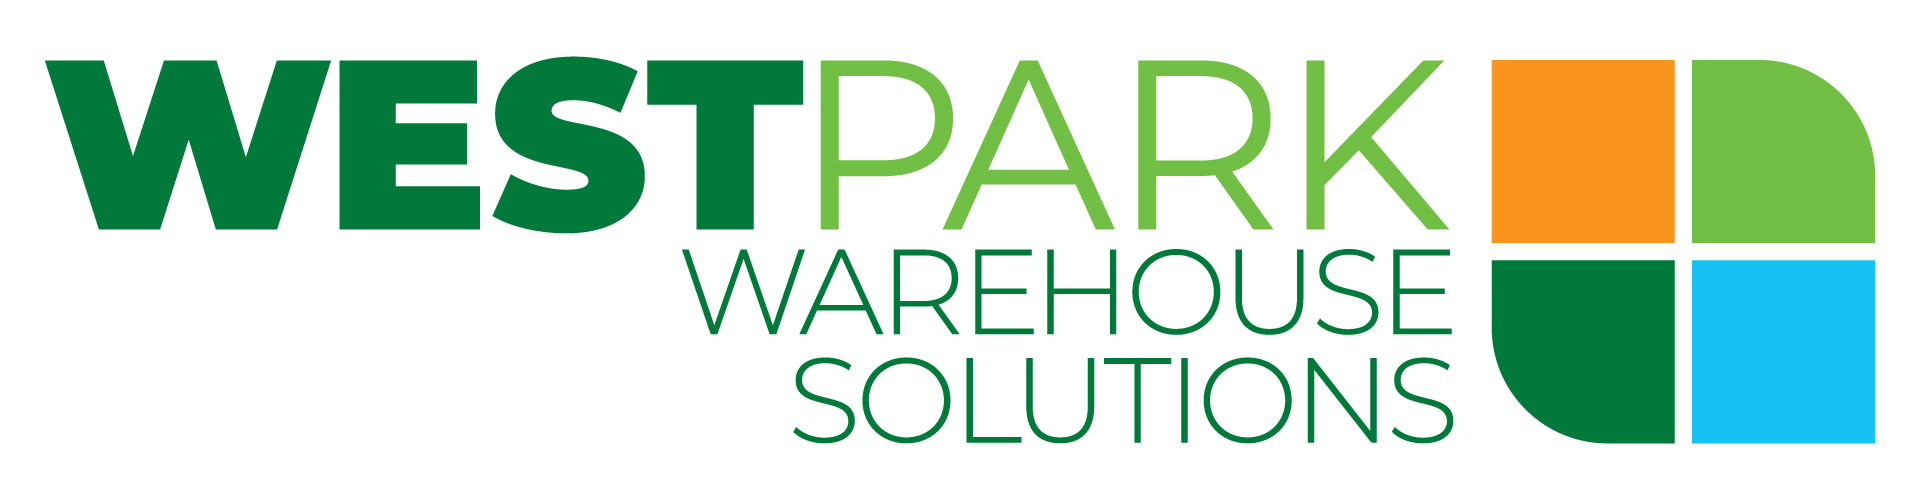 WestPark Warehouse Solutions